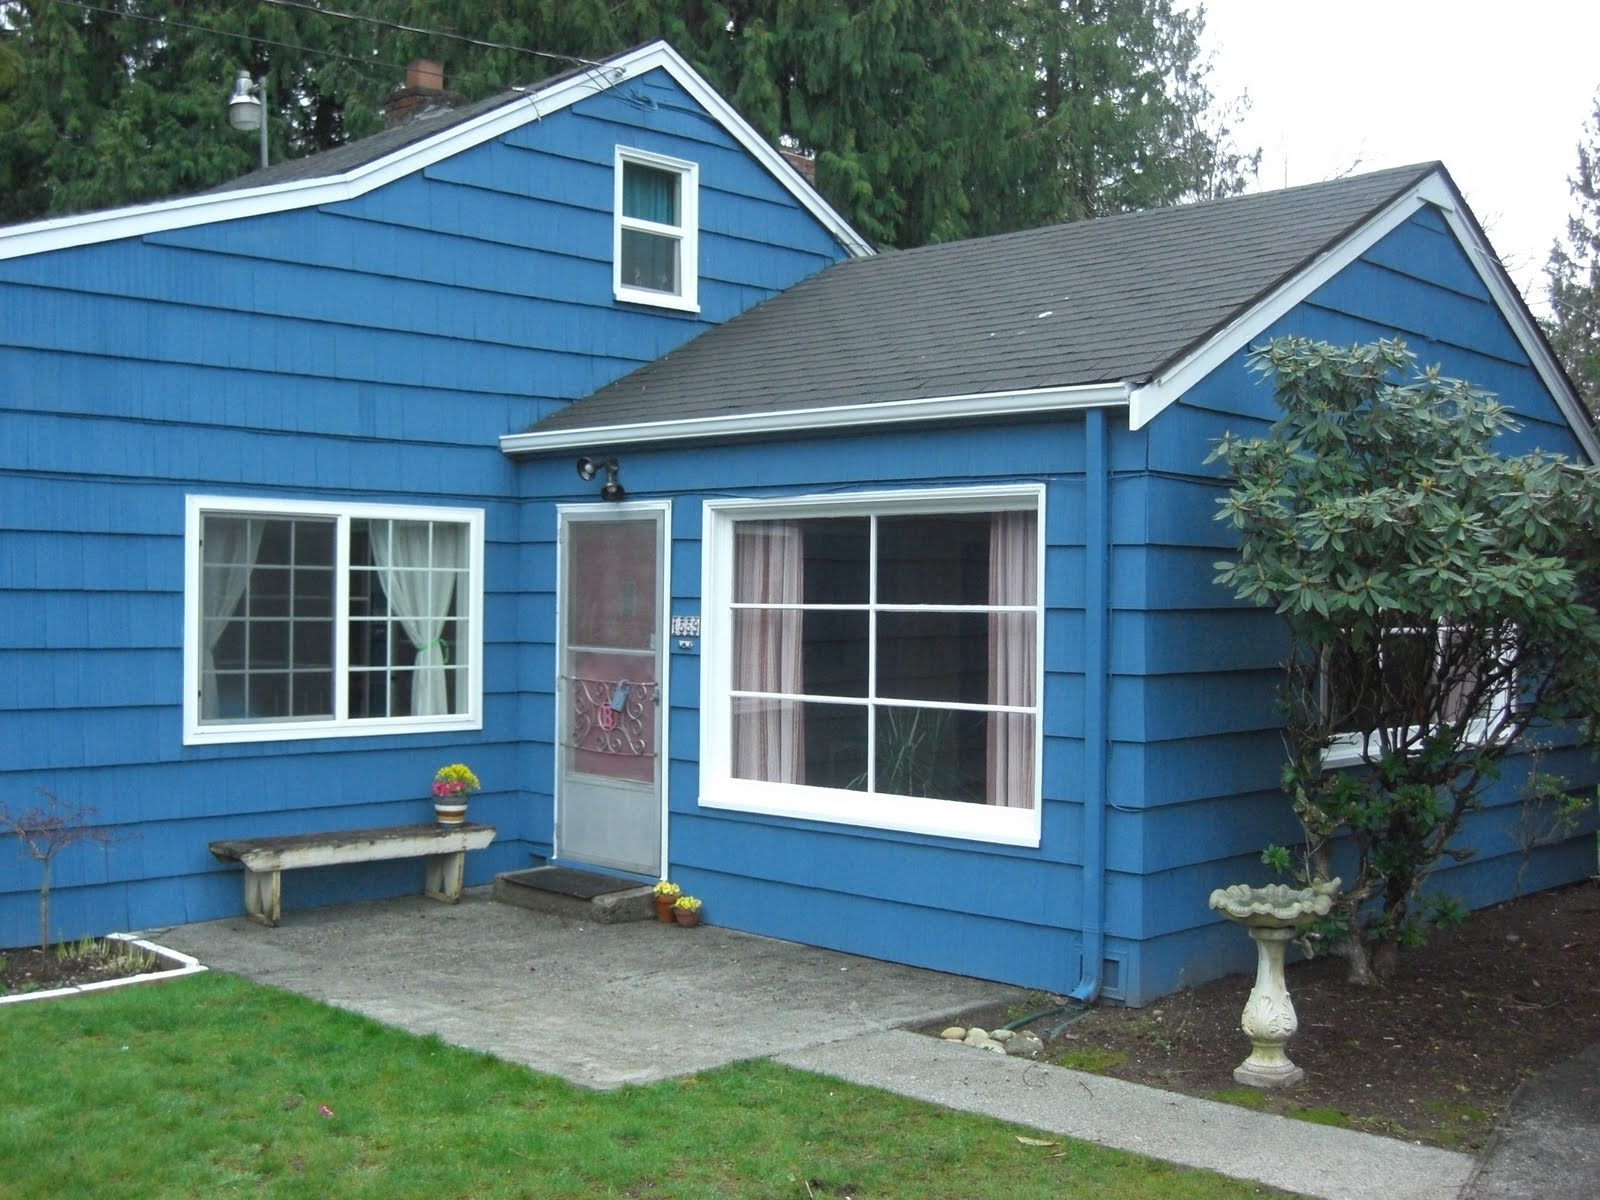 House With Mother-in-law Cottage Shoreline, WA $335,000